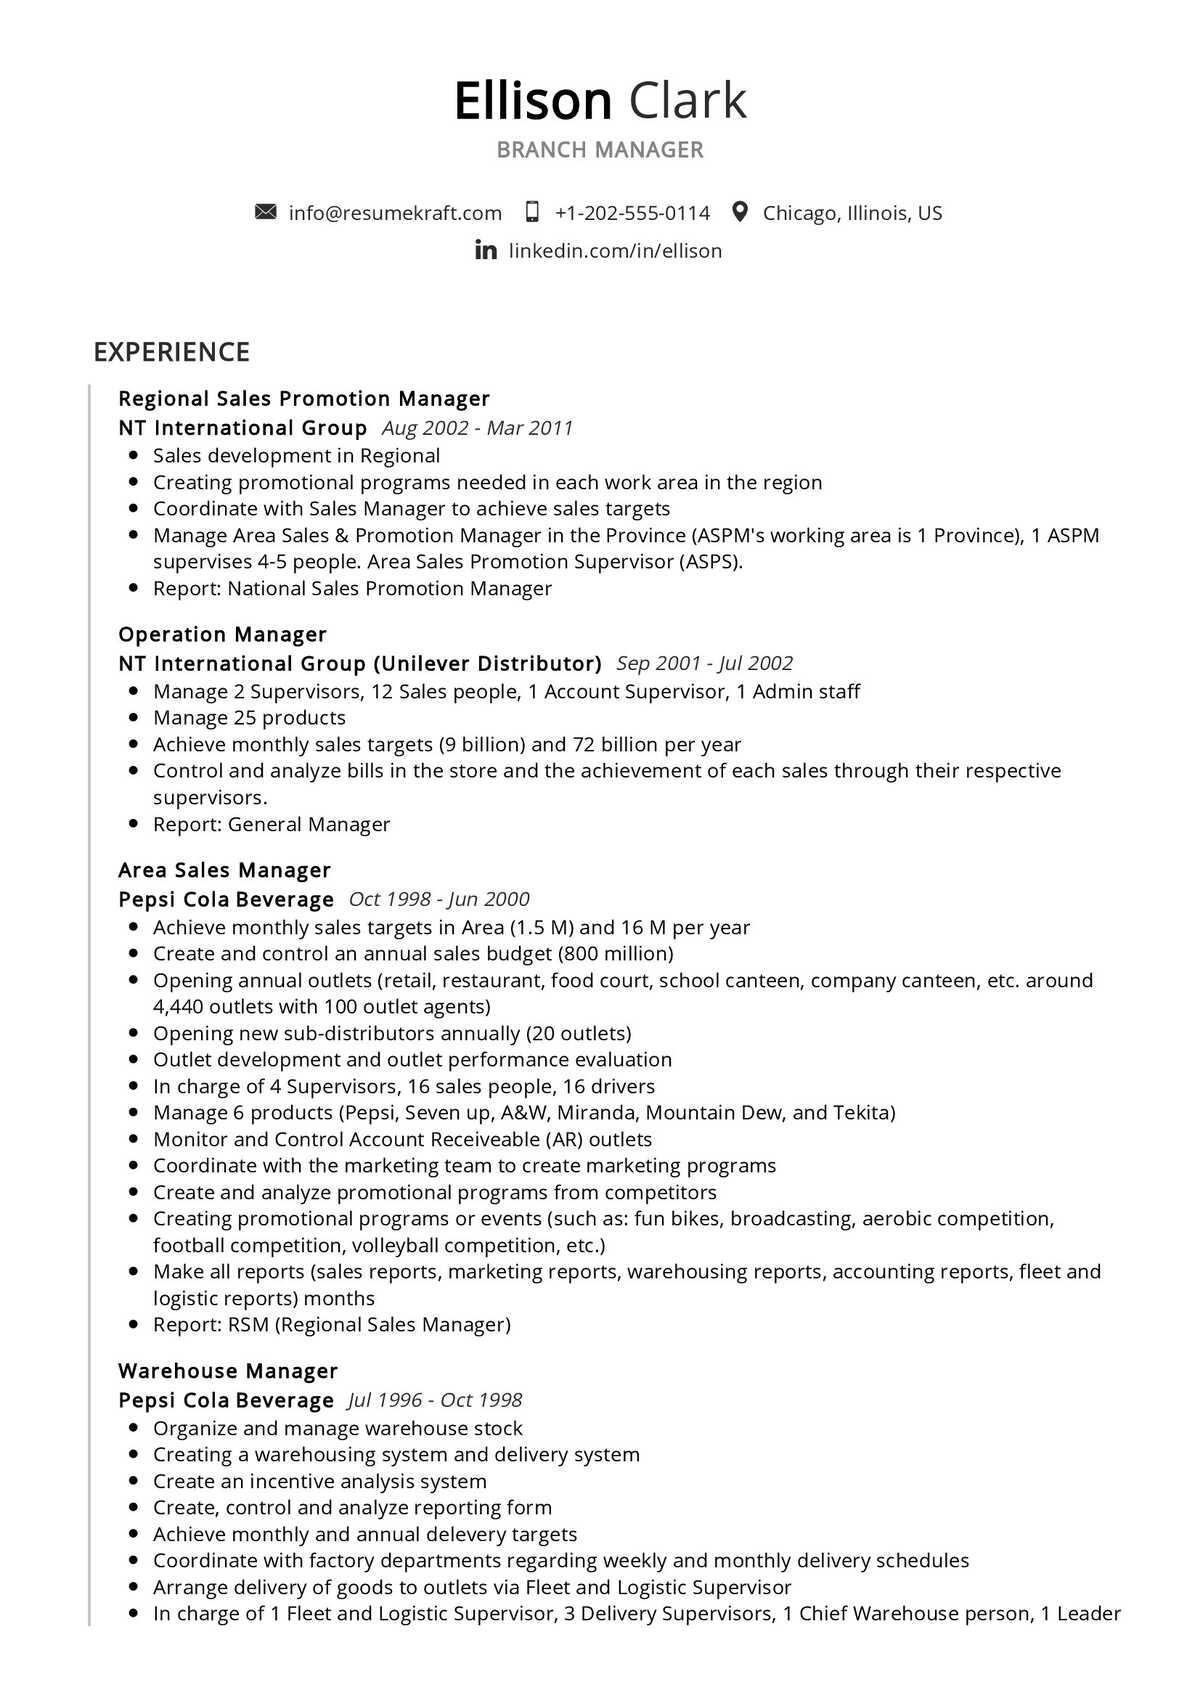 Branch Manager Resume Example